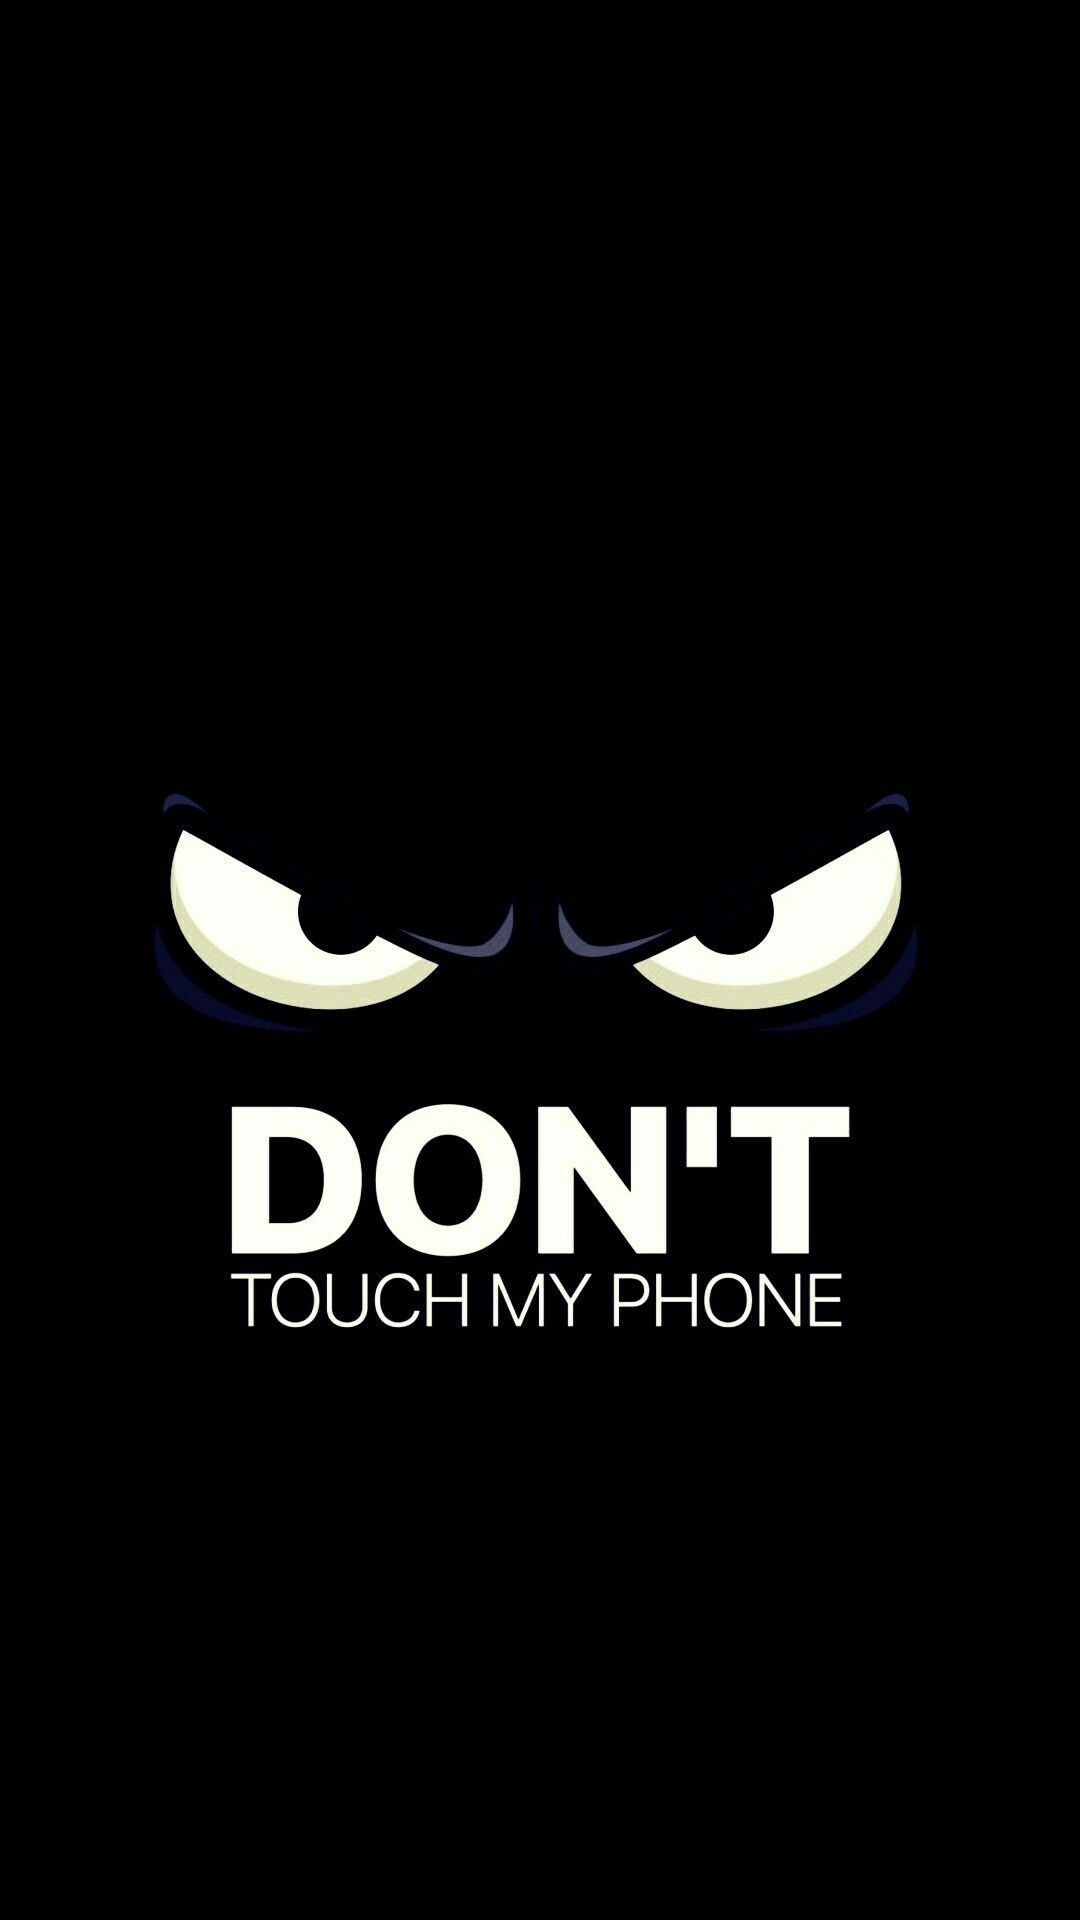 Pin By Cache On Wallpapers Dont Touch My Phone Wallpapers Phone Wallpaper For Men Funny Phone Wallpaper